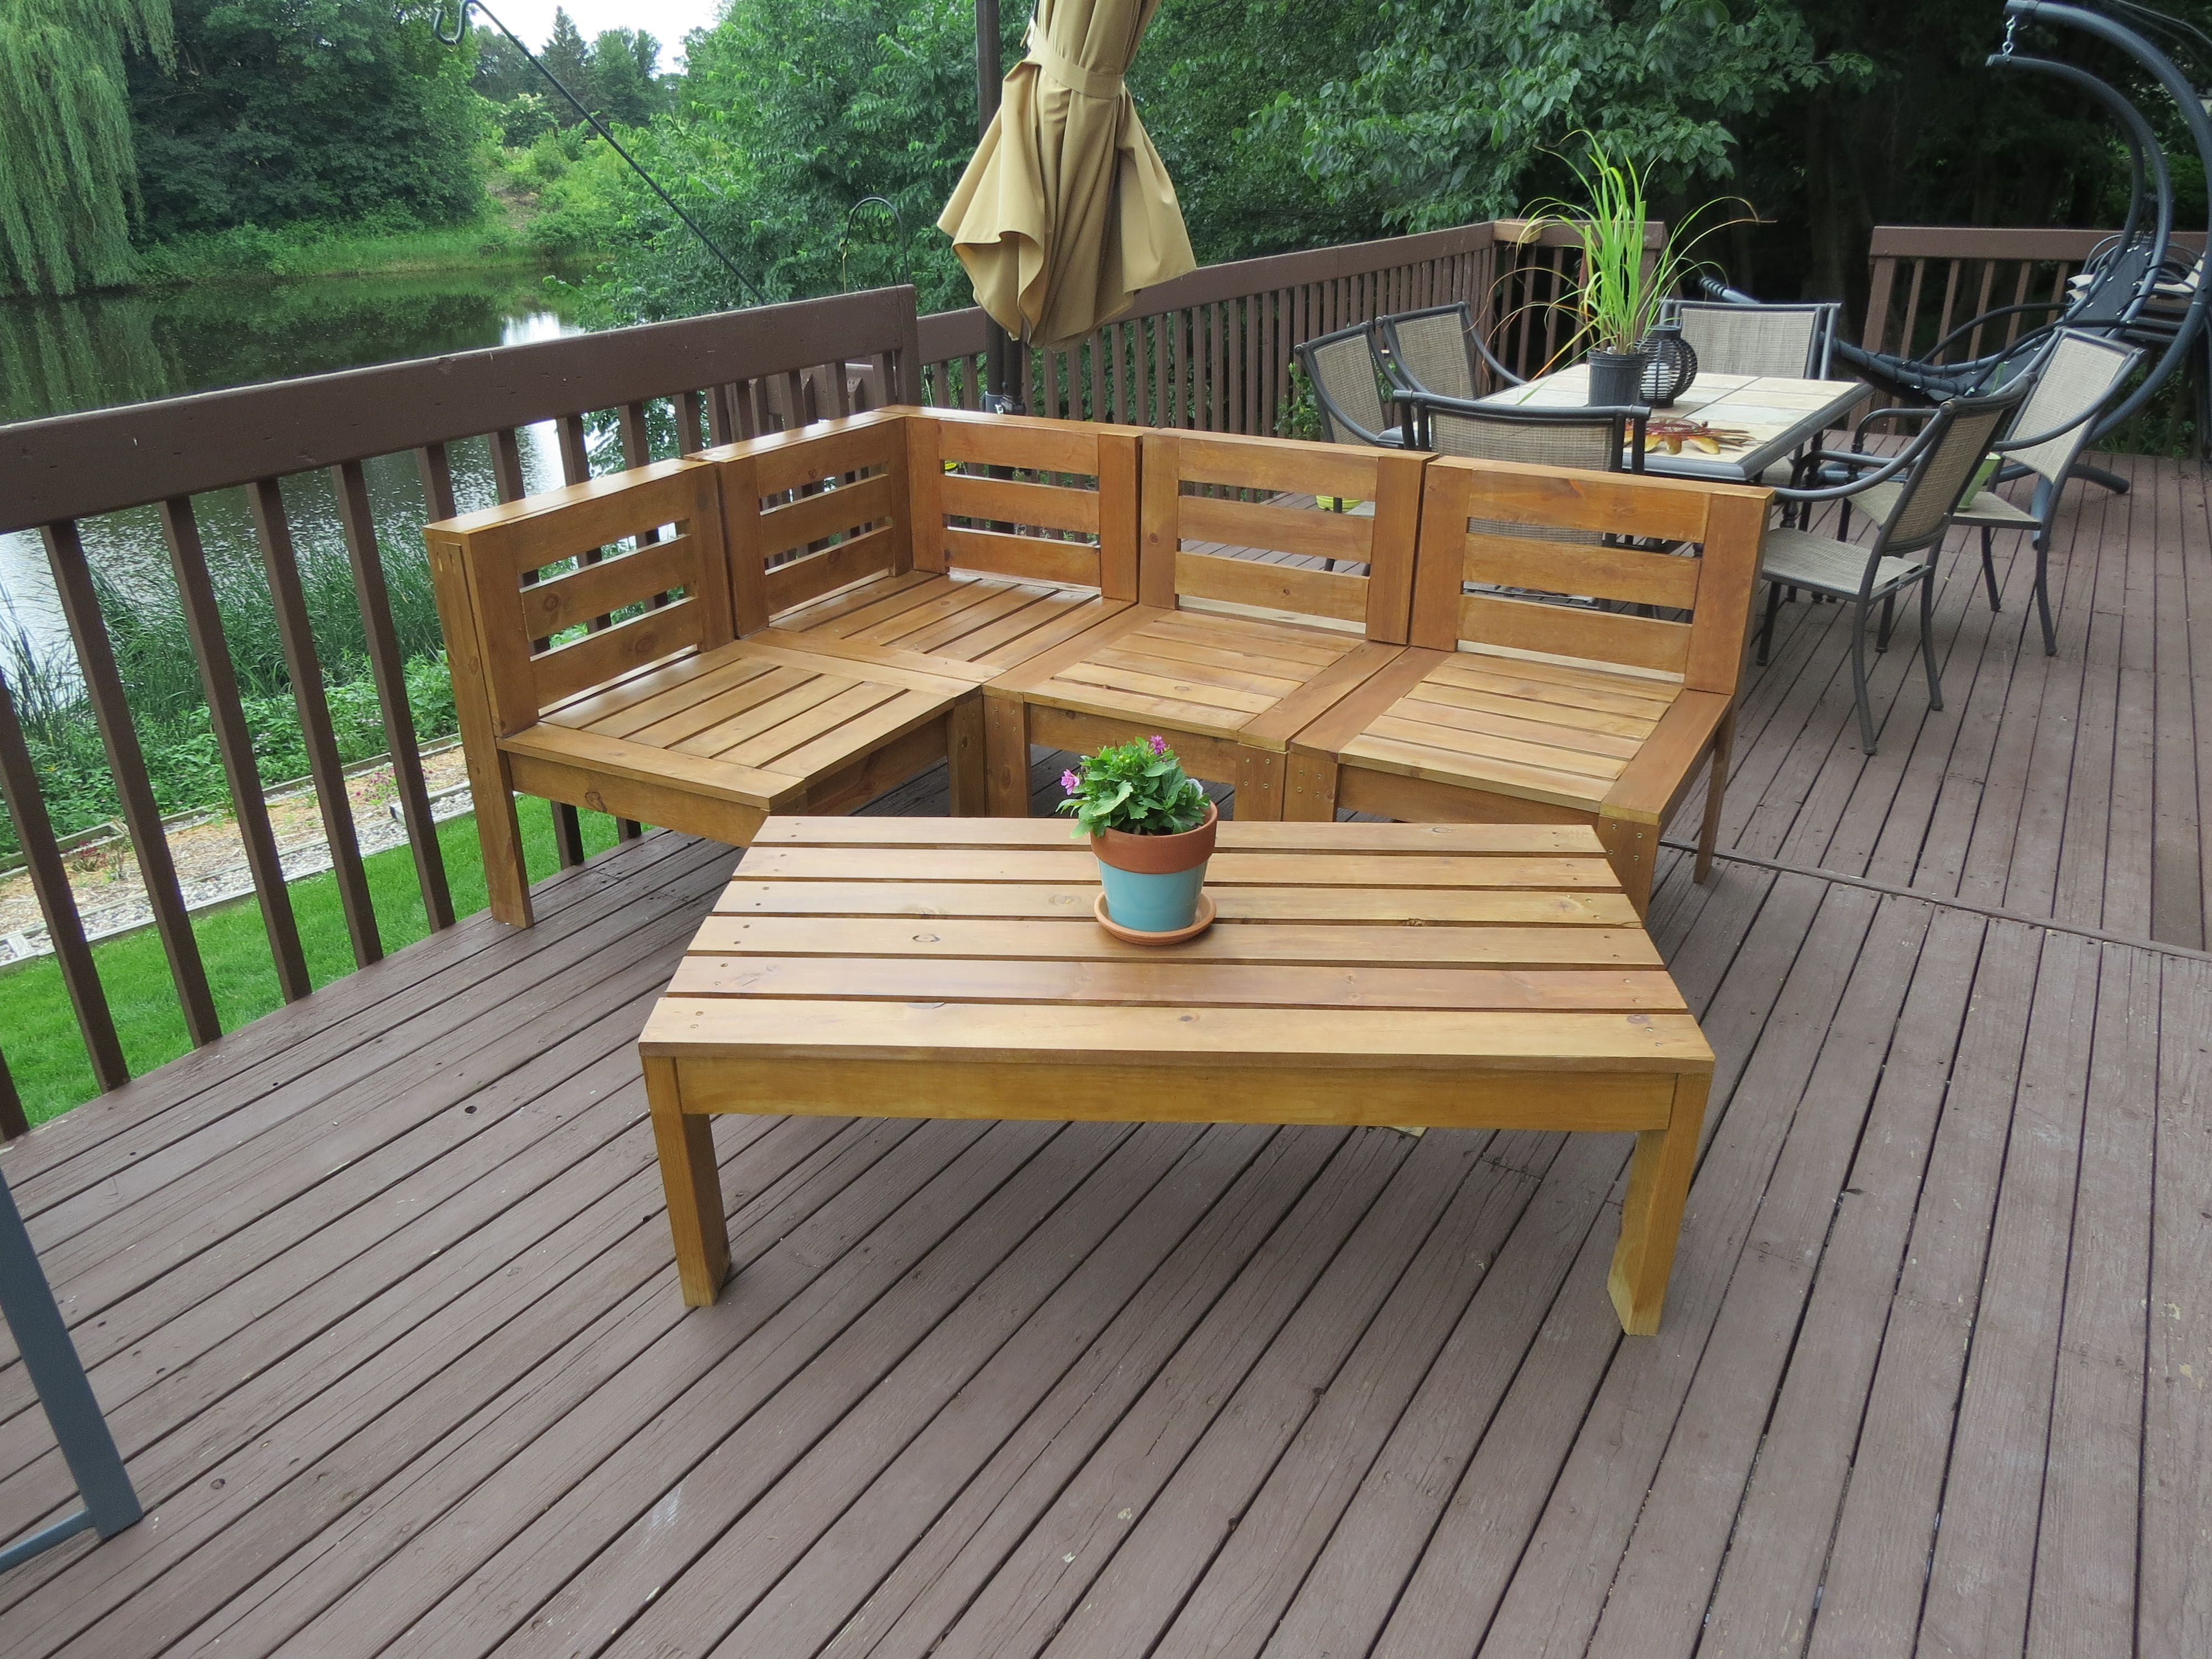 Outdoor sectional | Do It Yourself Home Projects from Ana White ...